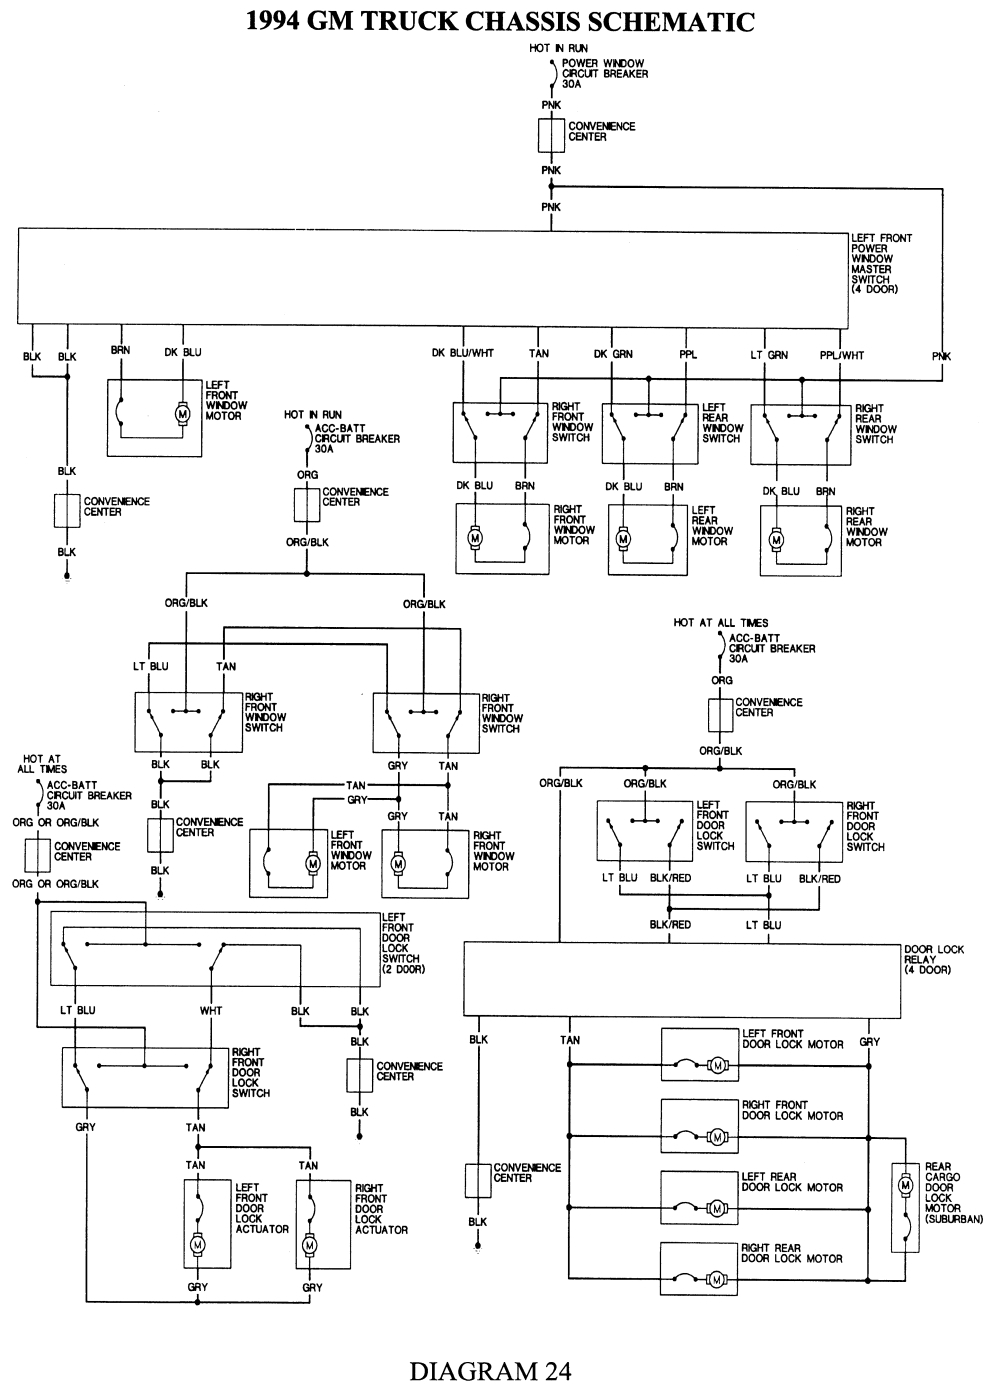 chevy 4x4 actuator wiring diagram Collection-chevy 4x4 actuator wiring diagram Collection Fig 7 c 15-q